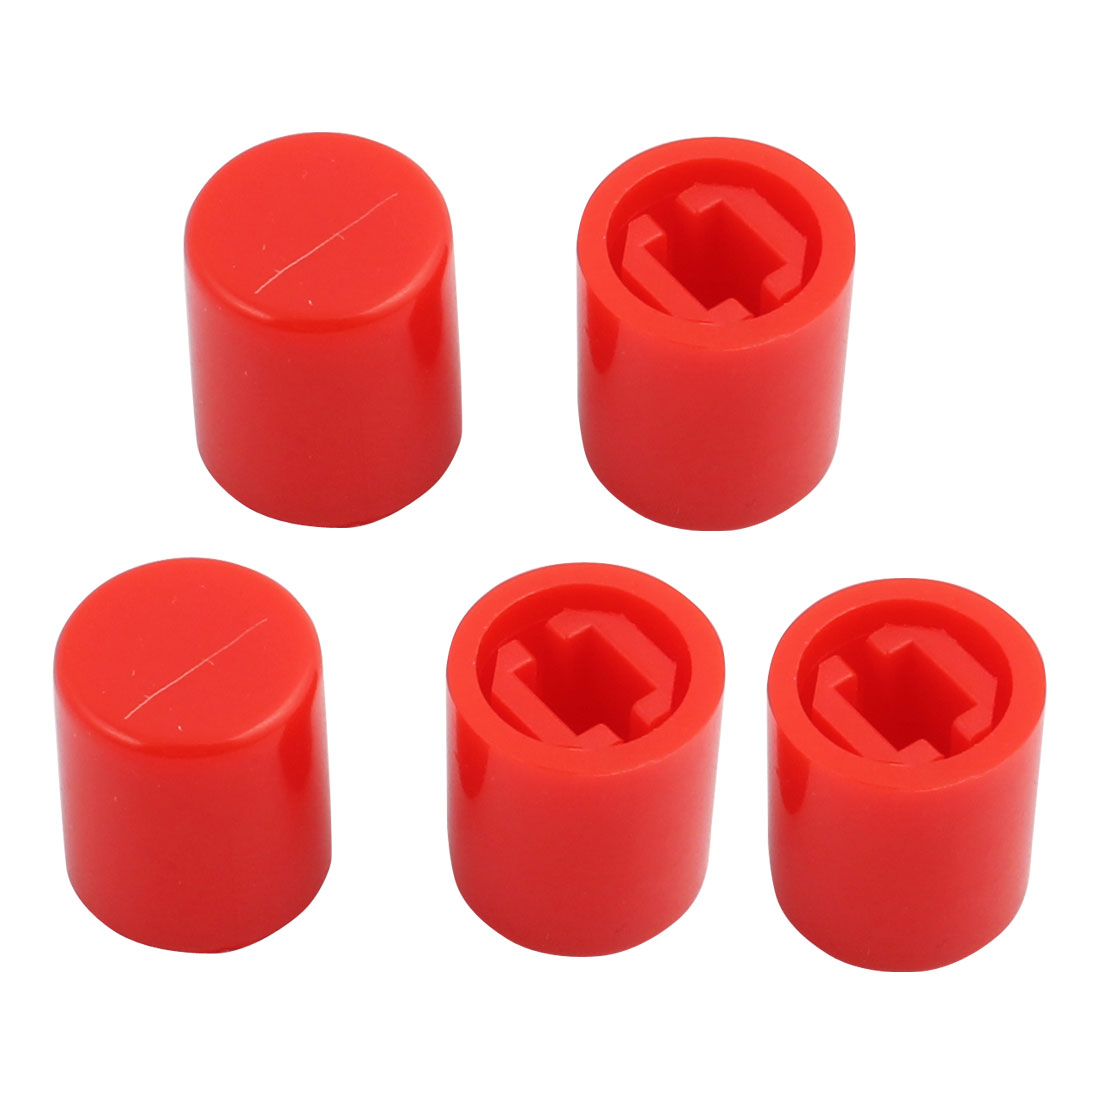 5Pcs Round Shaped Tactile Button Caps Covers f 9x10.5mm Tact Switch